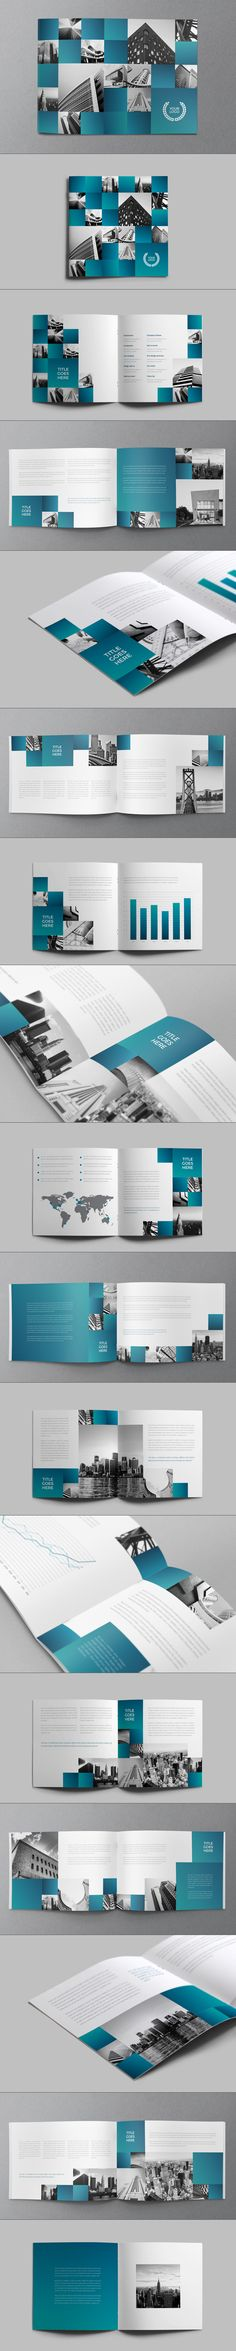 Architecture Squares Brochure by Abra Design, via Behance